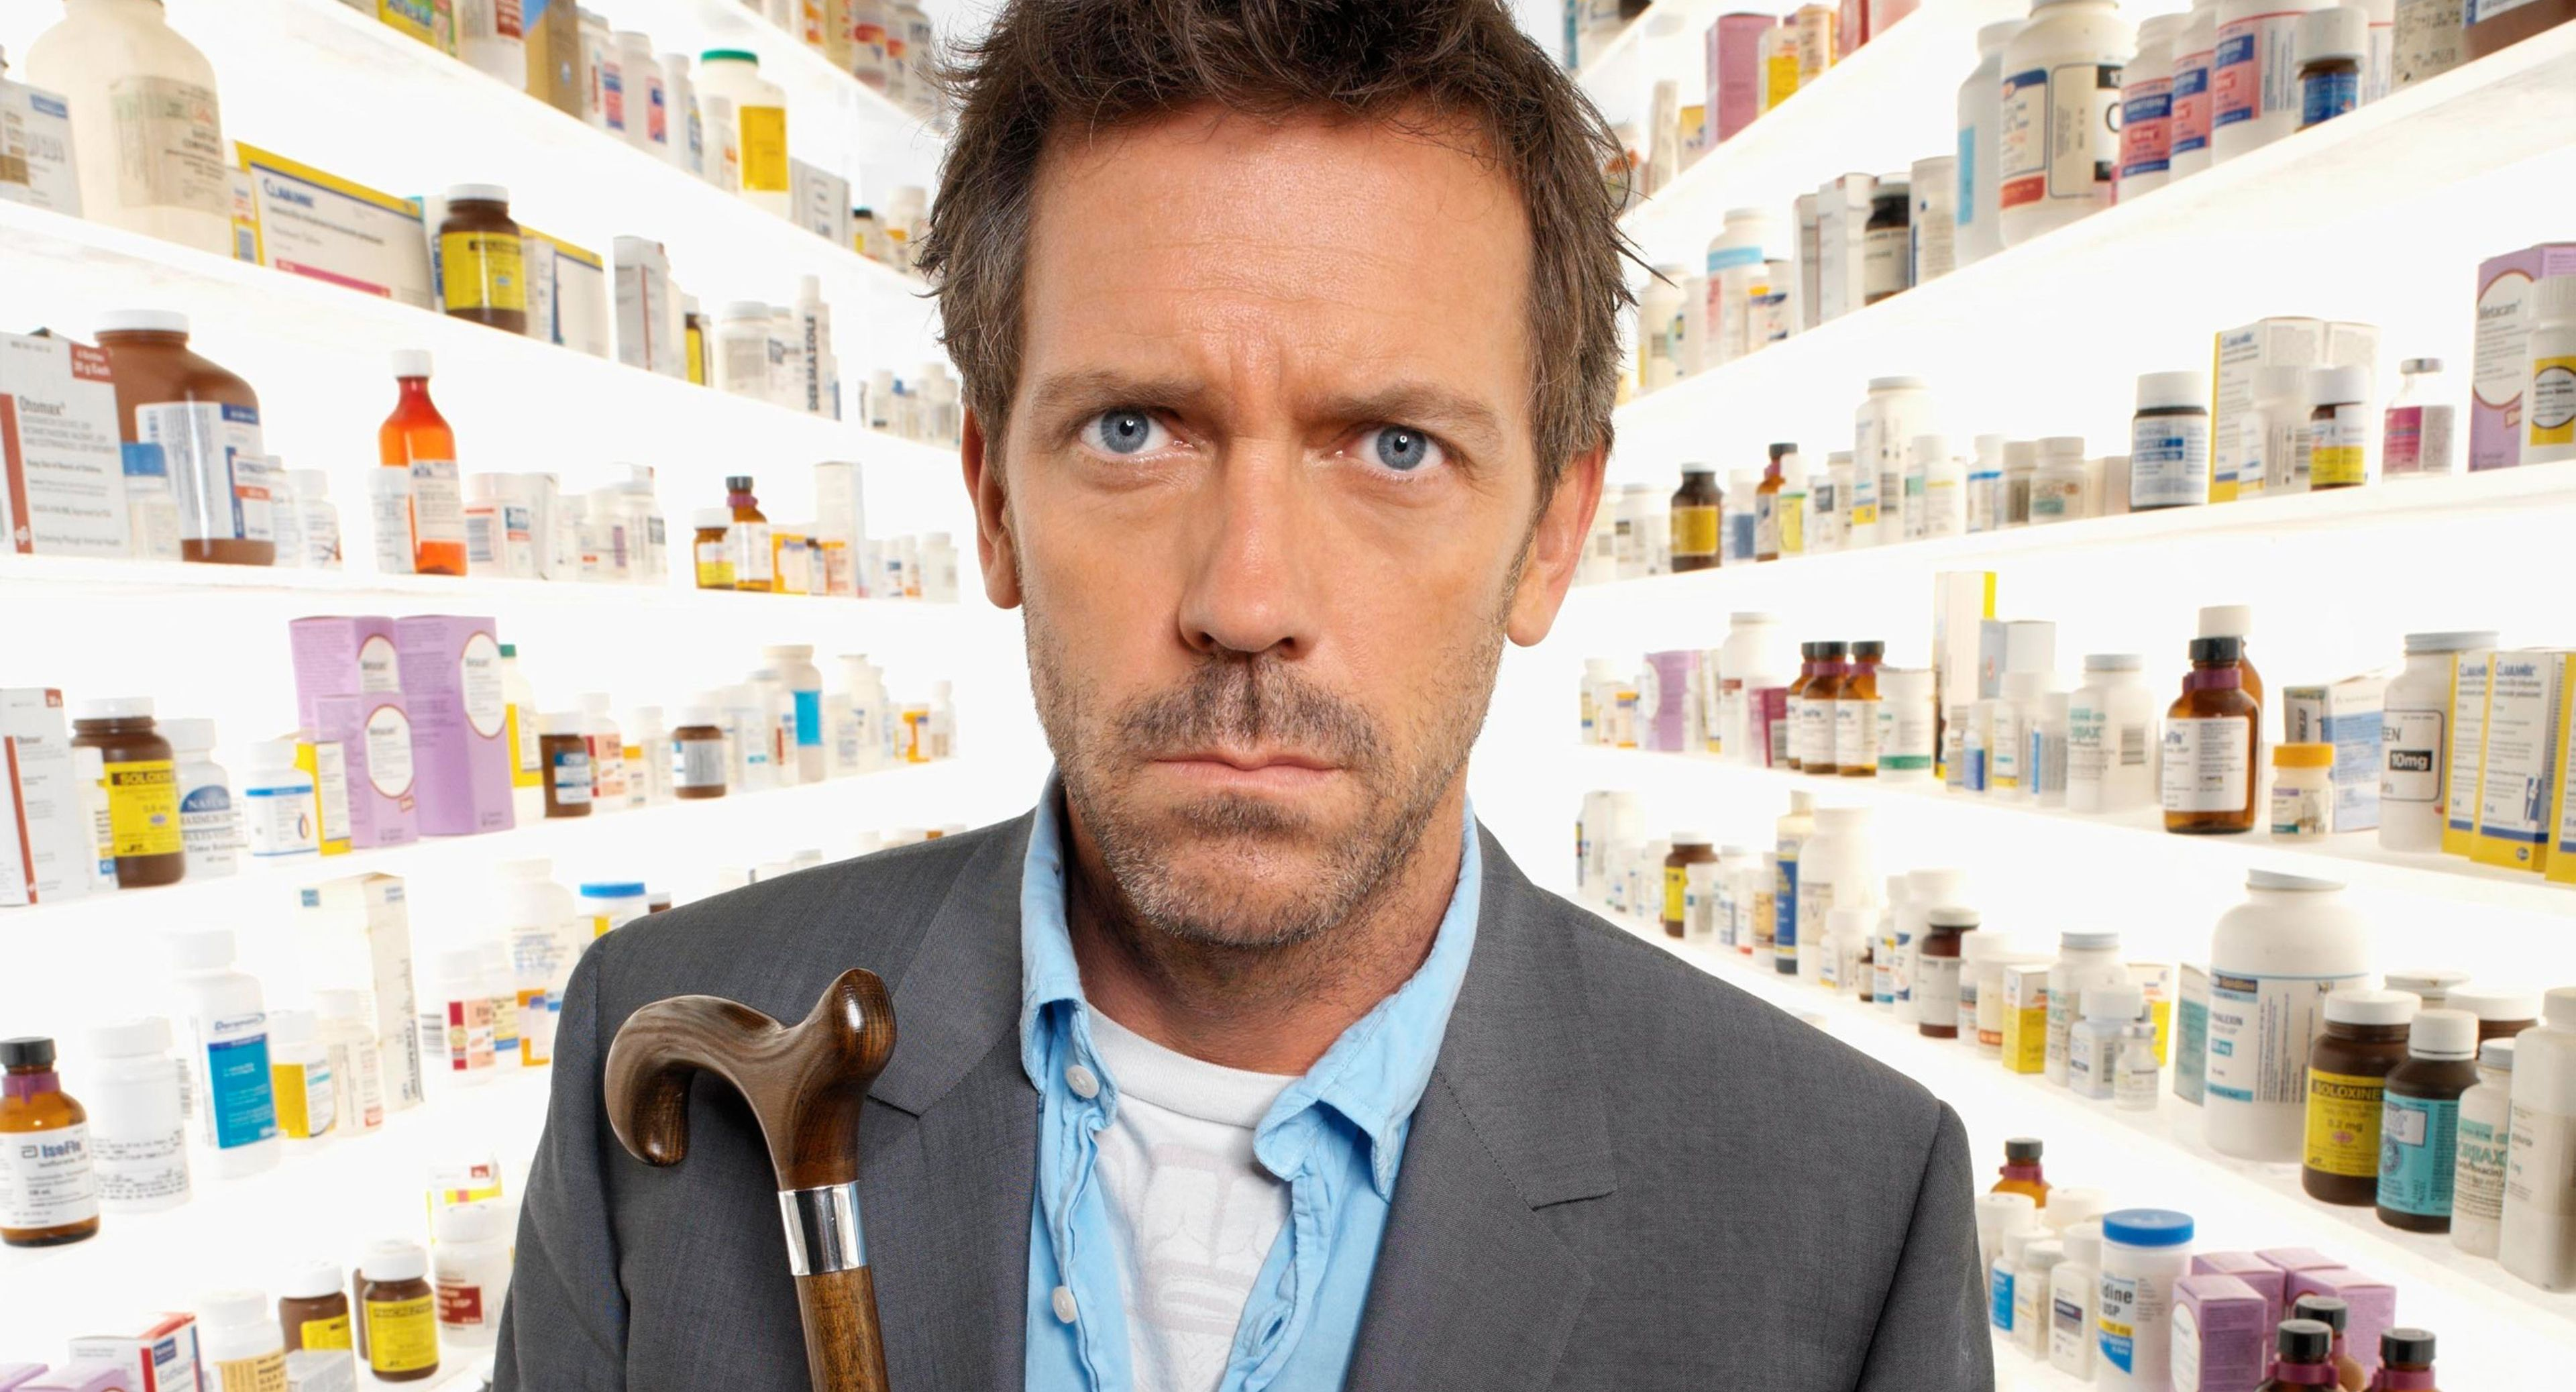 Amanda Seyfried Dr House house is 10: the best episodes of hugh laurie's medical